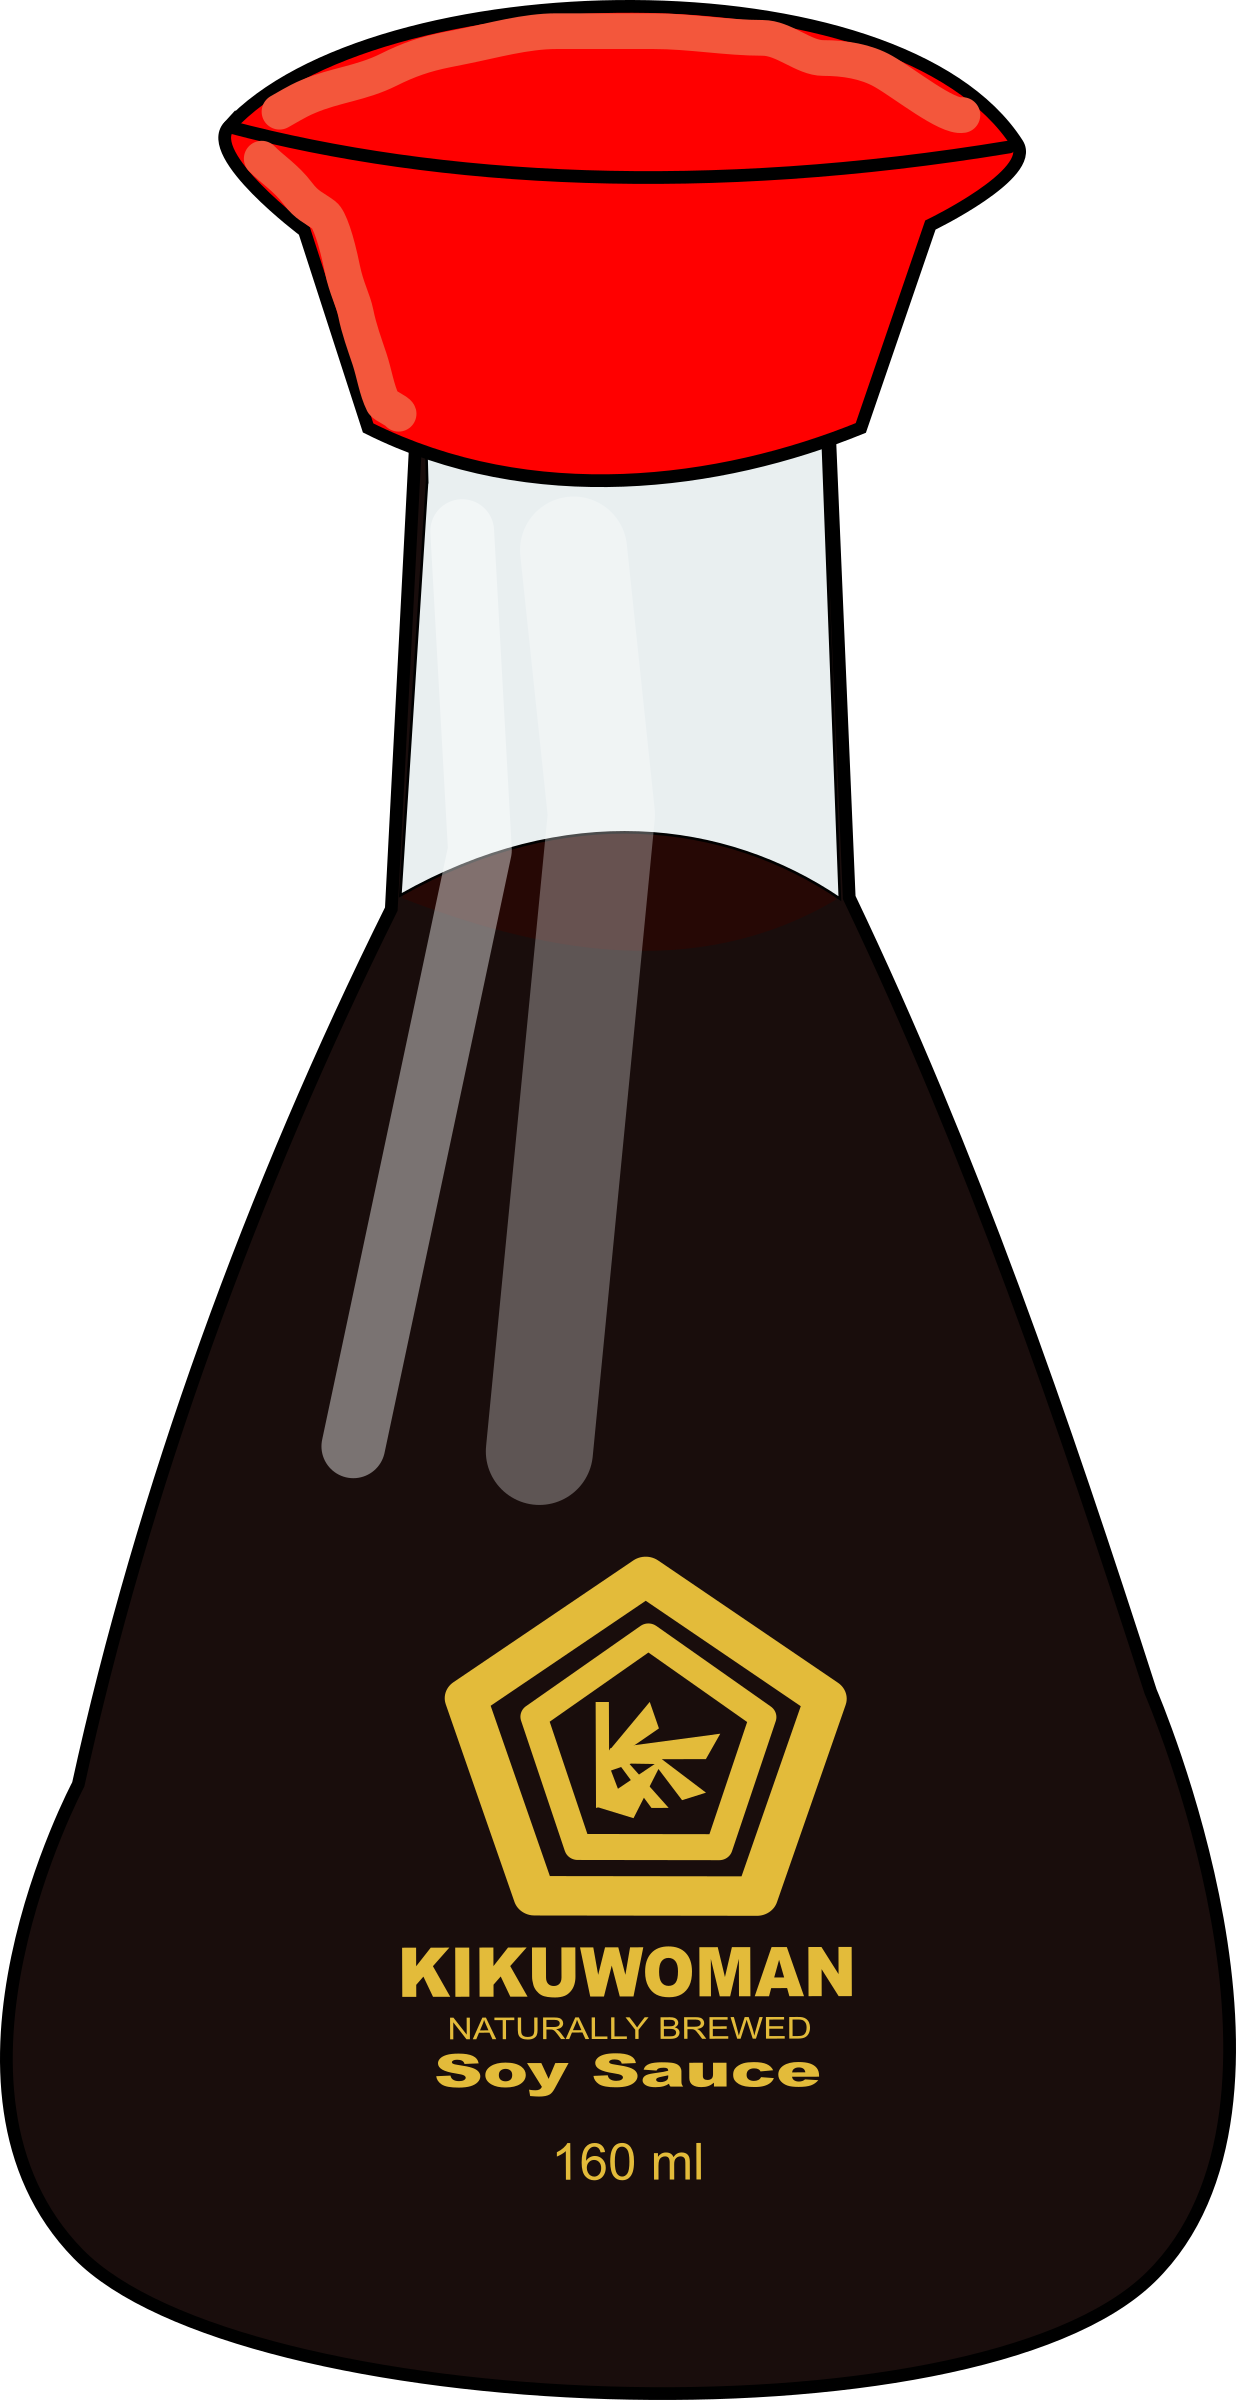 Soy Sauce Bottle by j4p4n